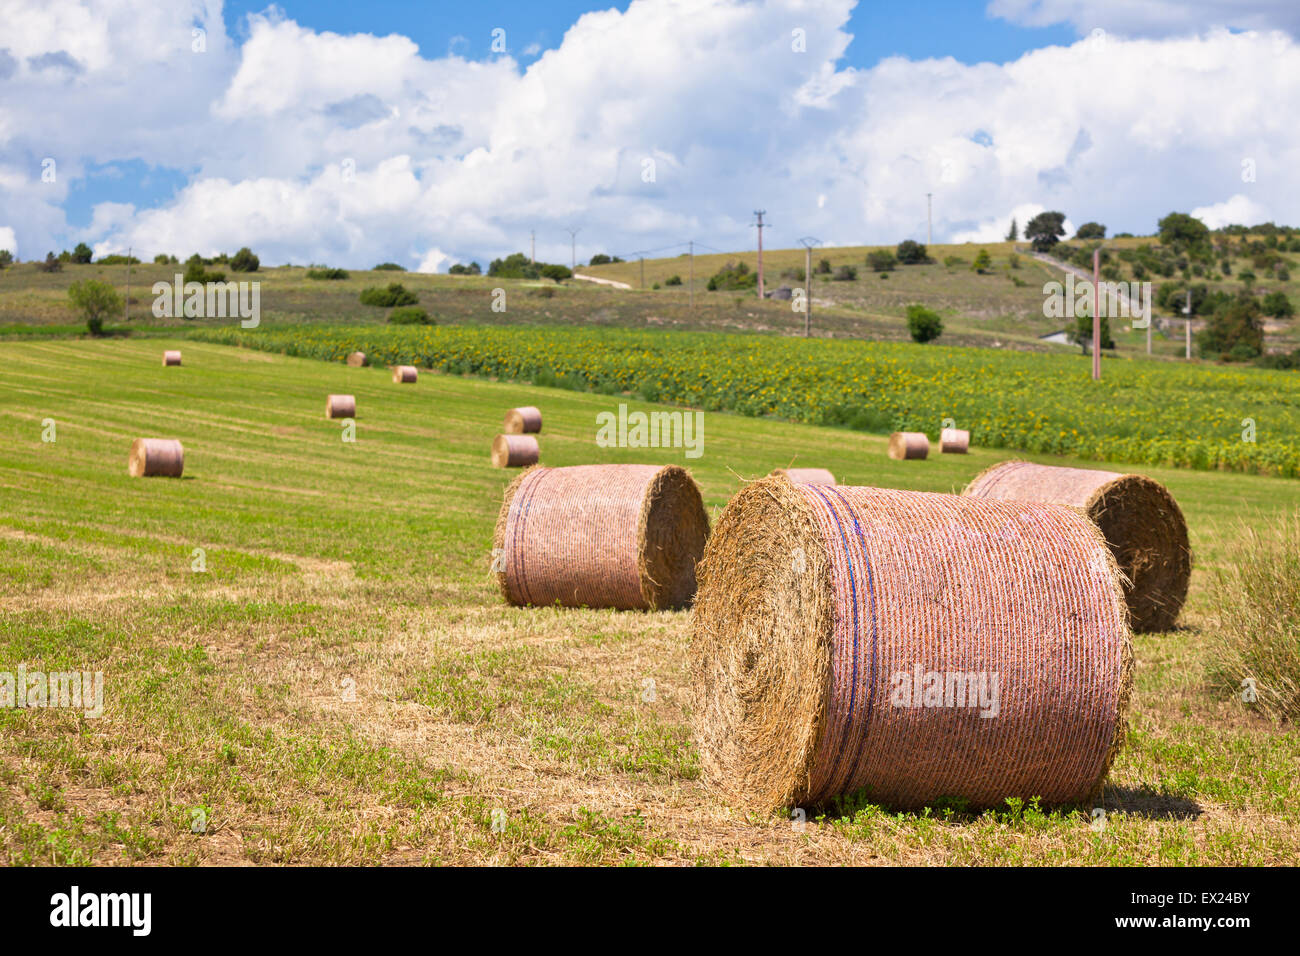 Rural landscape with Farmland and Straw bales in Provence, France - Stock Image